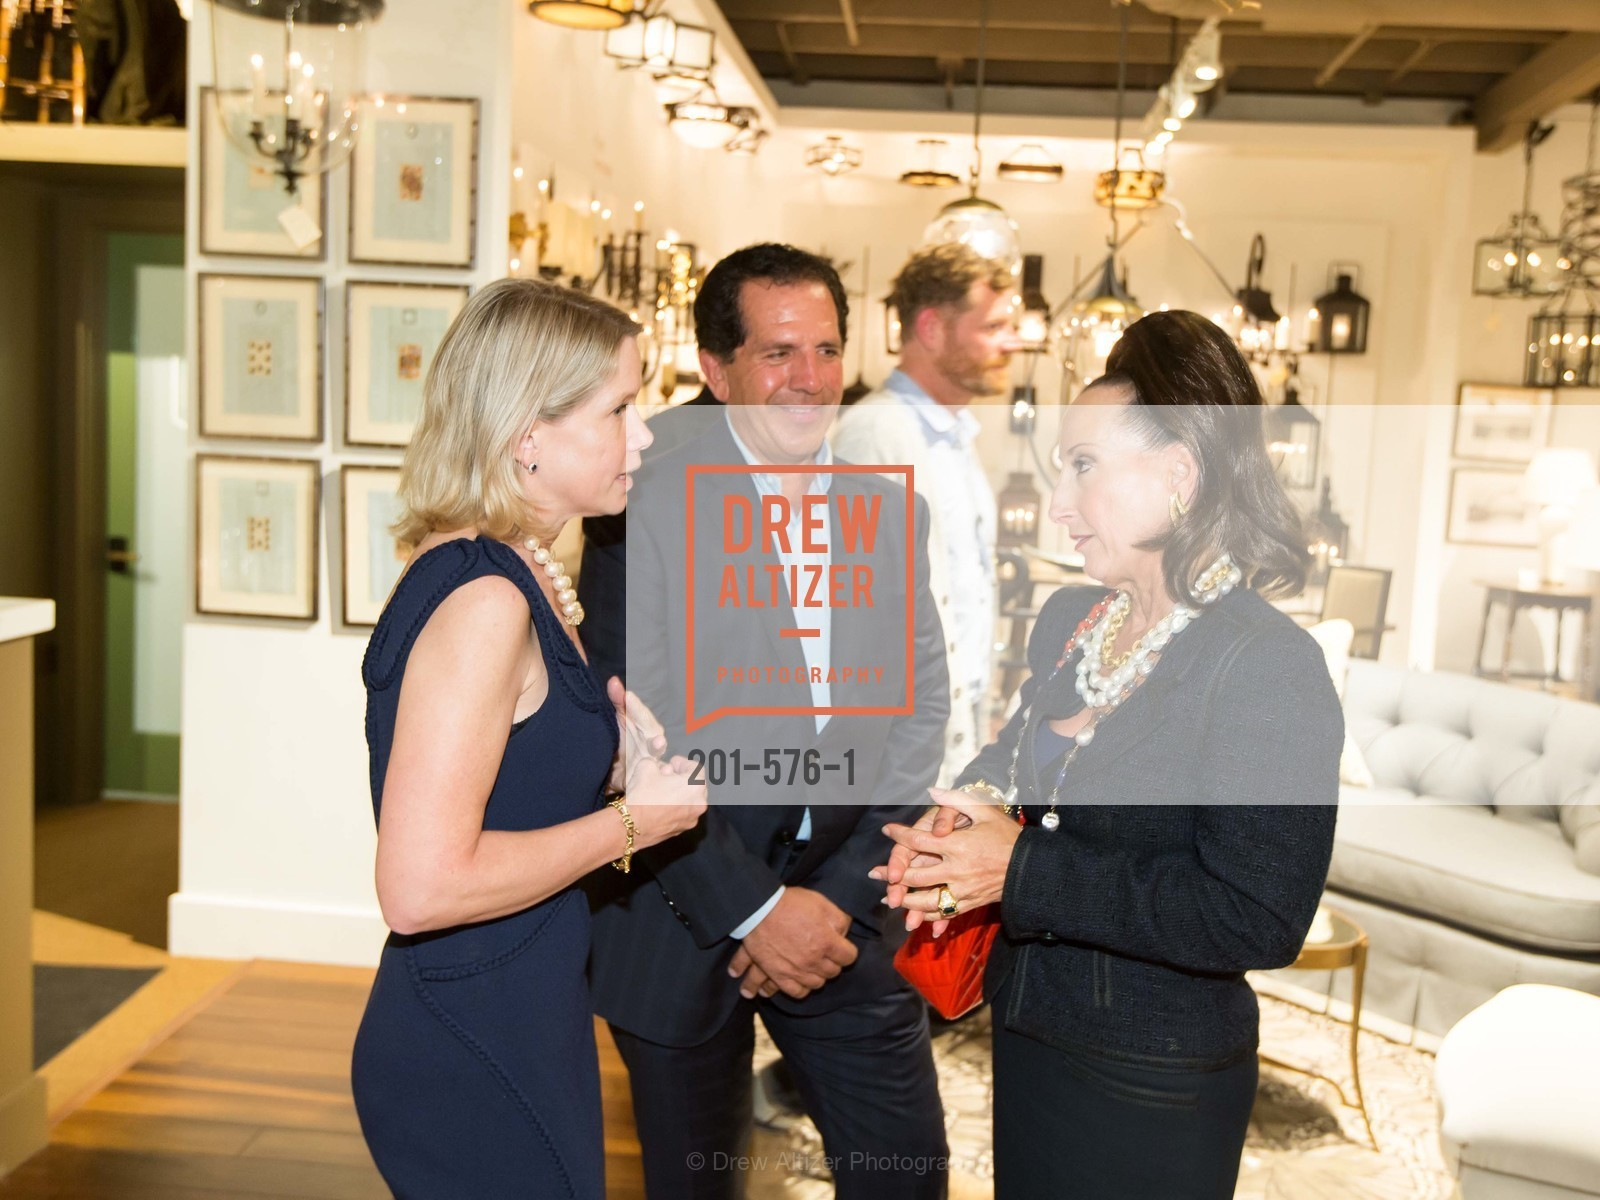 Ariane Trimuschat, Bob Federighi, Toni Wolfson, SF FALL ANTIQUES SHOW Designer's Circle Cocktail Party at HEWN, US, September 23rd, 2014,Drew Altizer, Drew Altizer Photography, full-service agency, private events, San Francisco photographer, photographer california